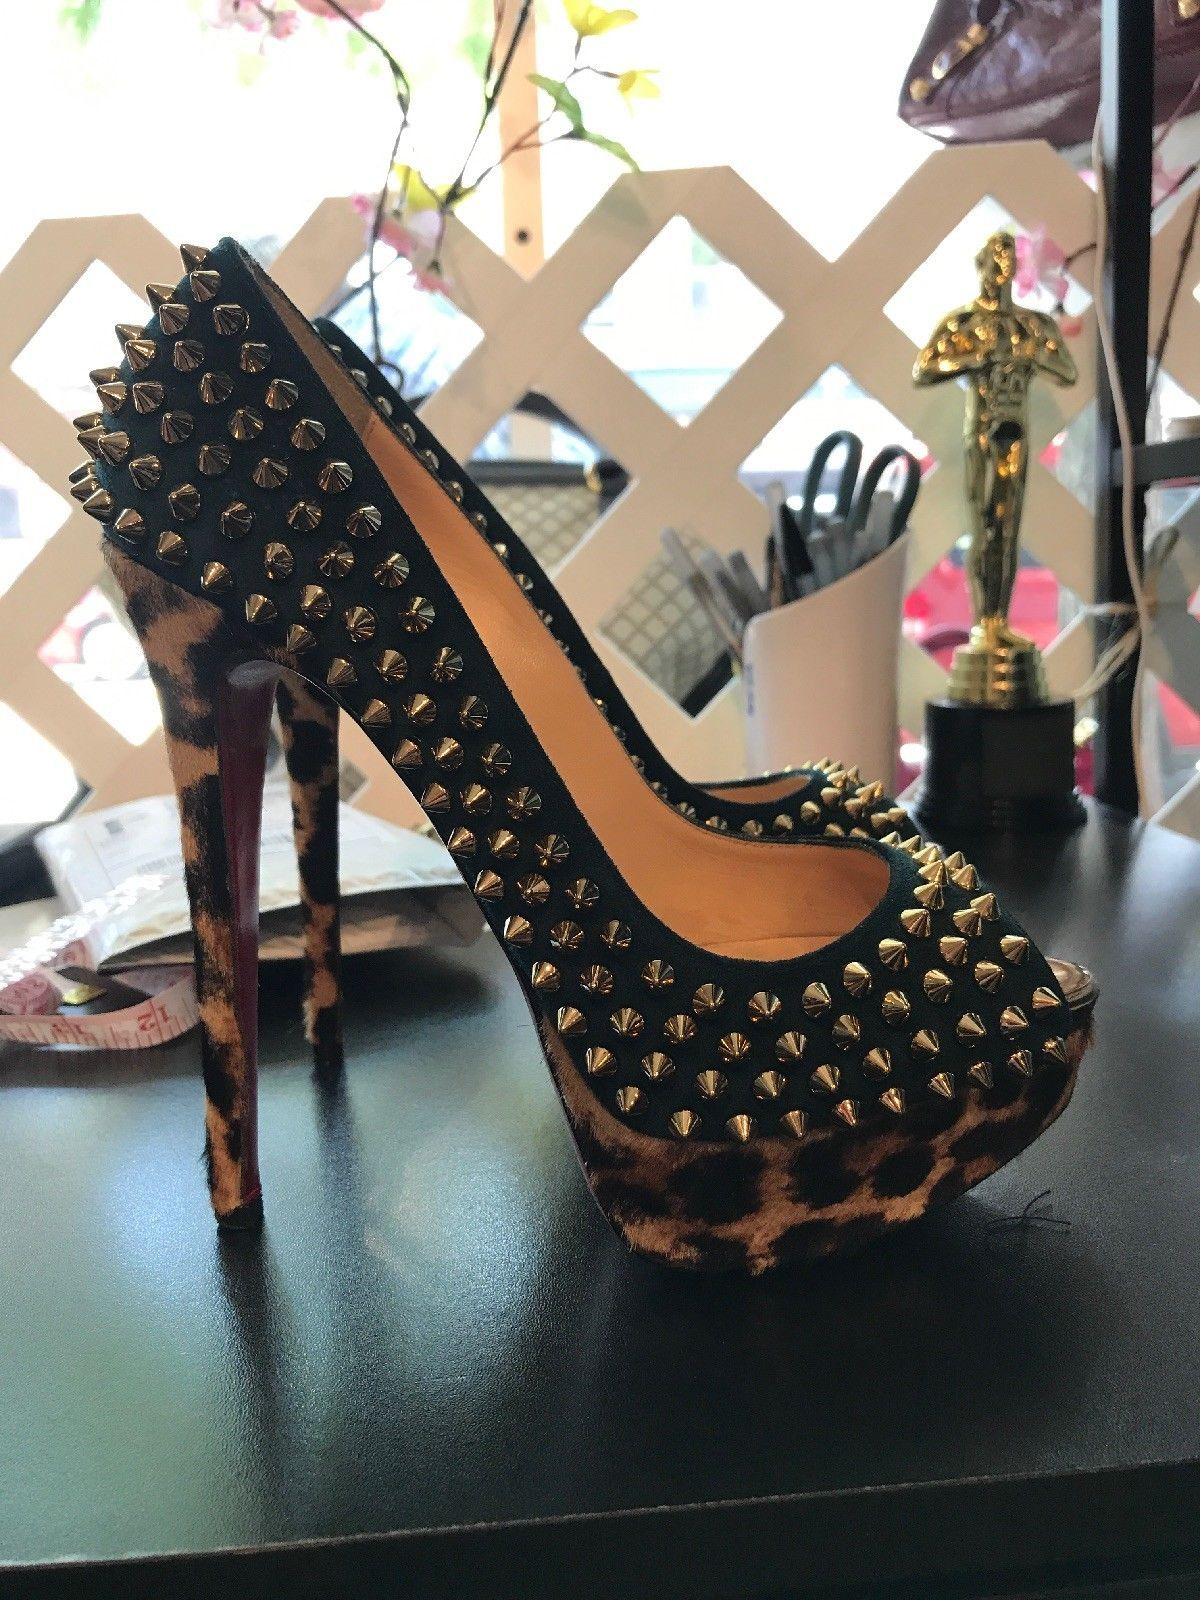 4467244ed3c Details about AUTH CHRISTIAN LOUBOUTIN Miss Poppins Leopard Pony ...